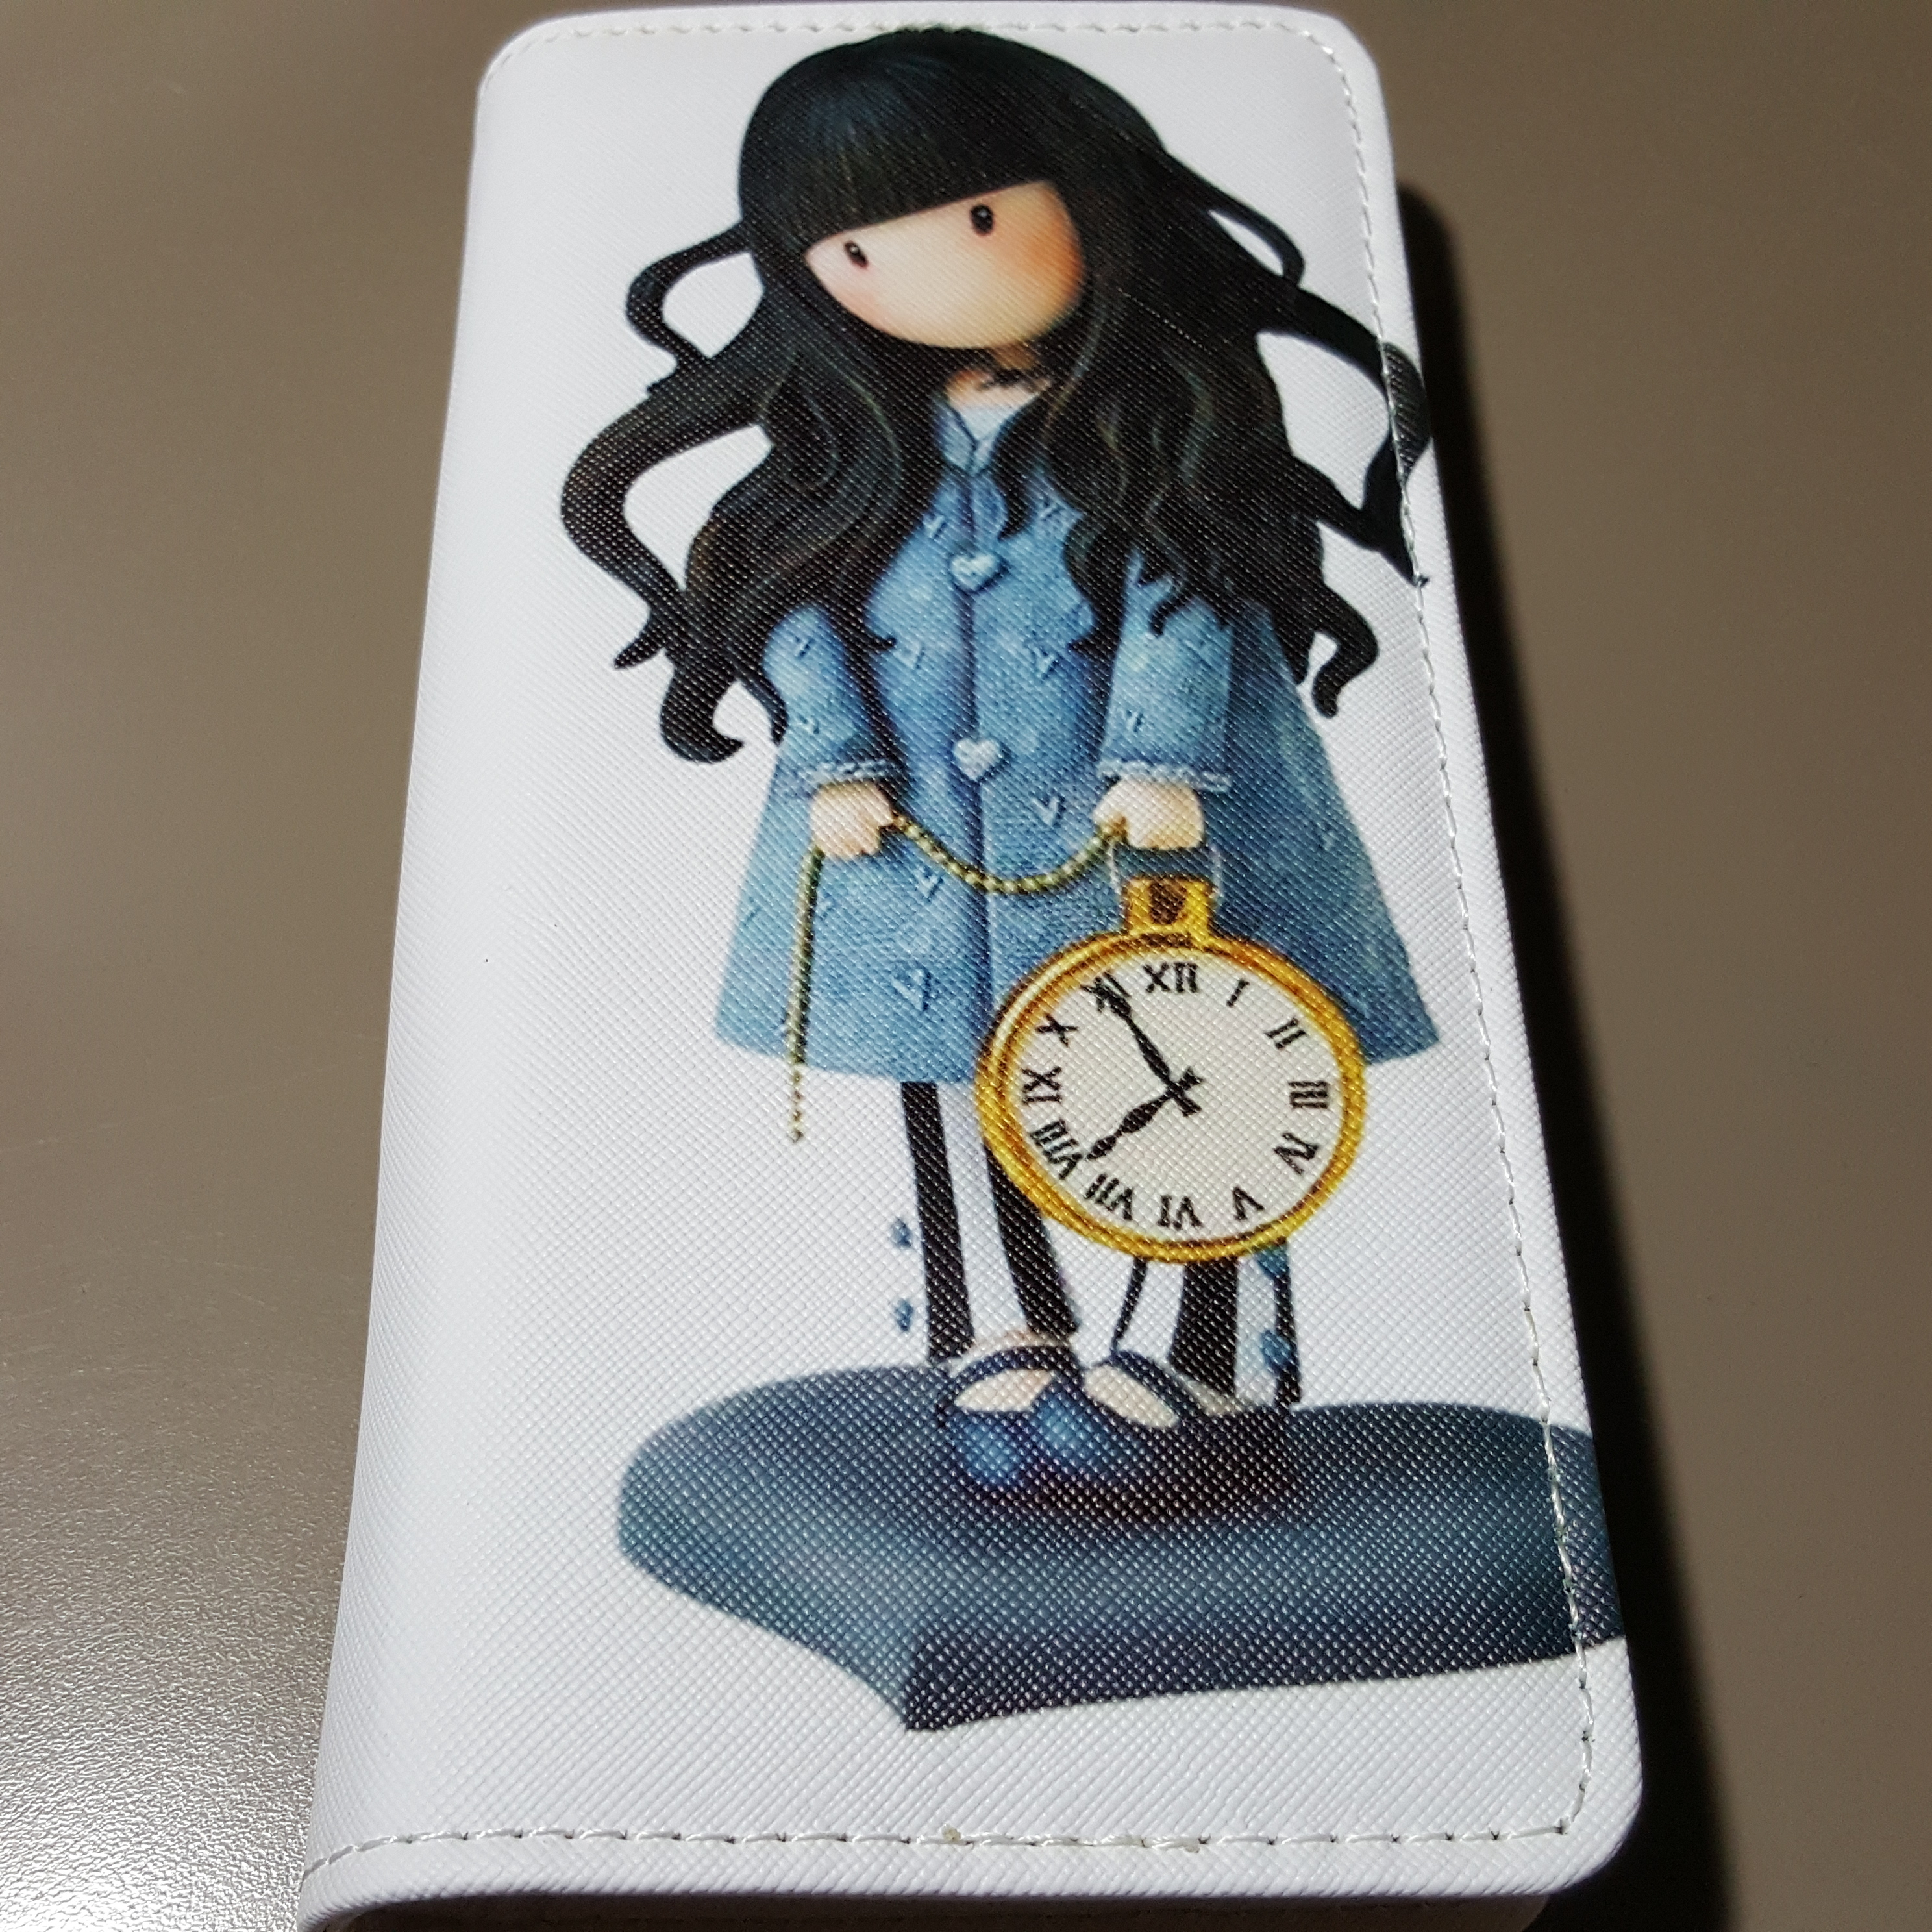 Ladies clutch wallet purse Girl with pocketwatch ladies clutch wallet purse (3)